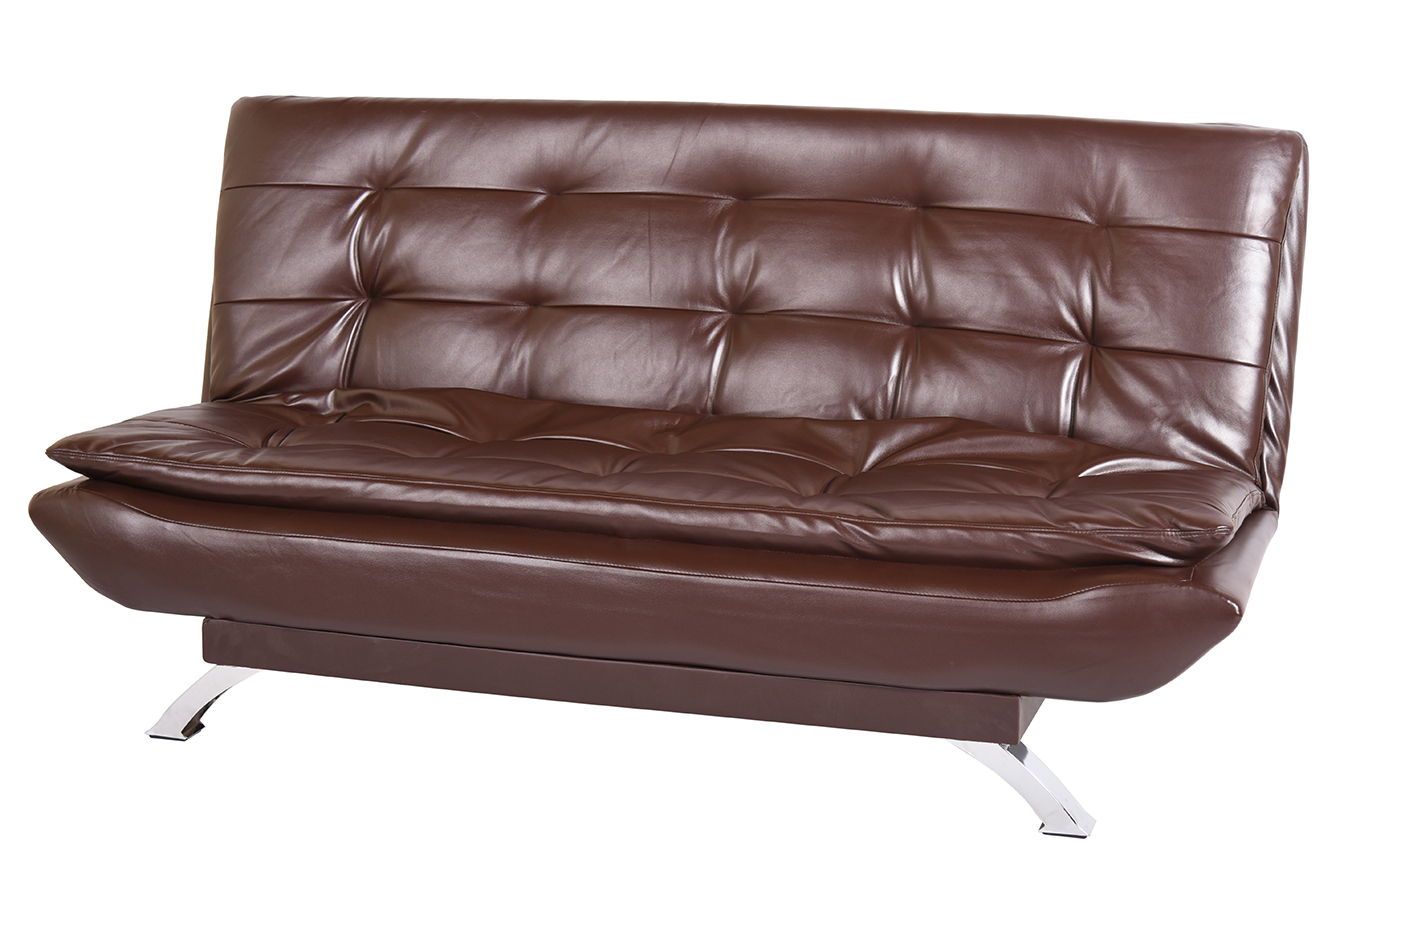 sleeper chairs south africa wheelchair pad couches and tanya couch was sold for r2 299